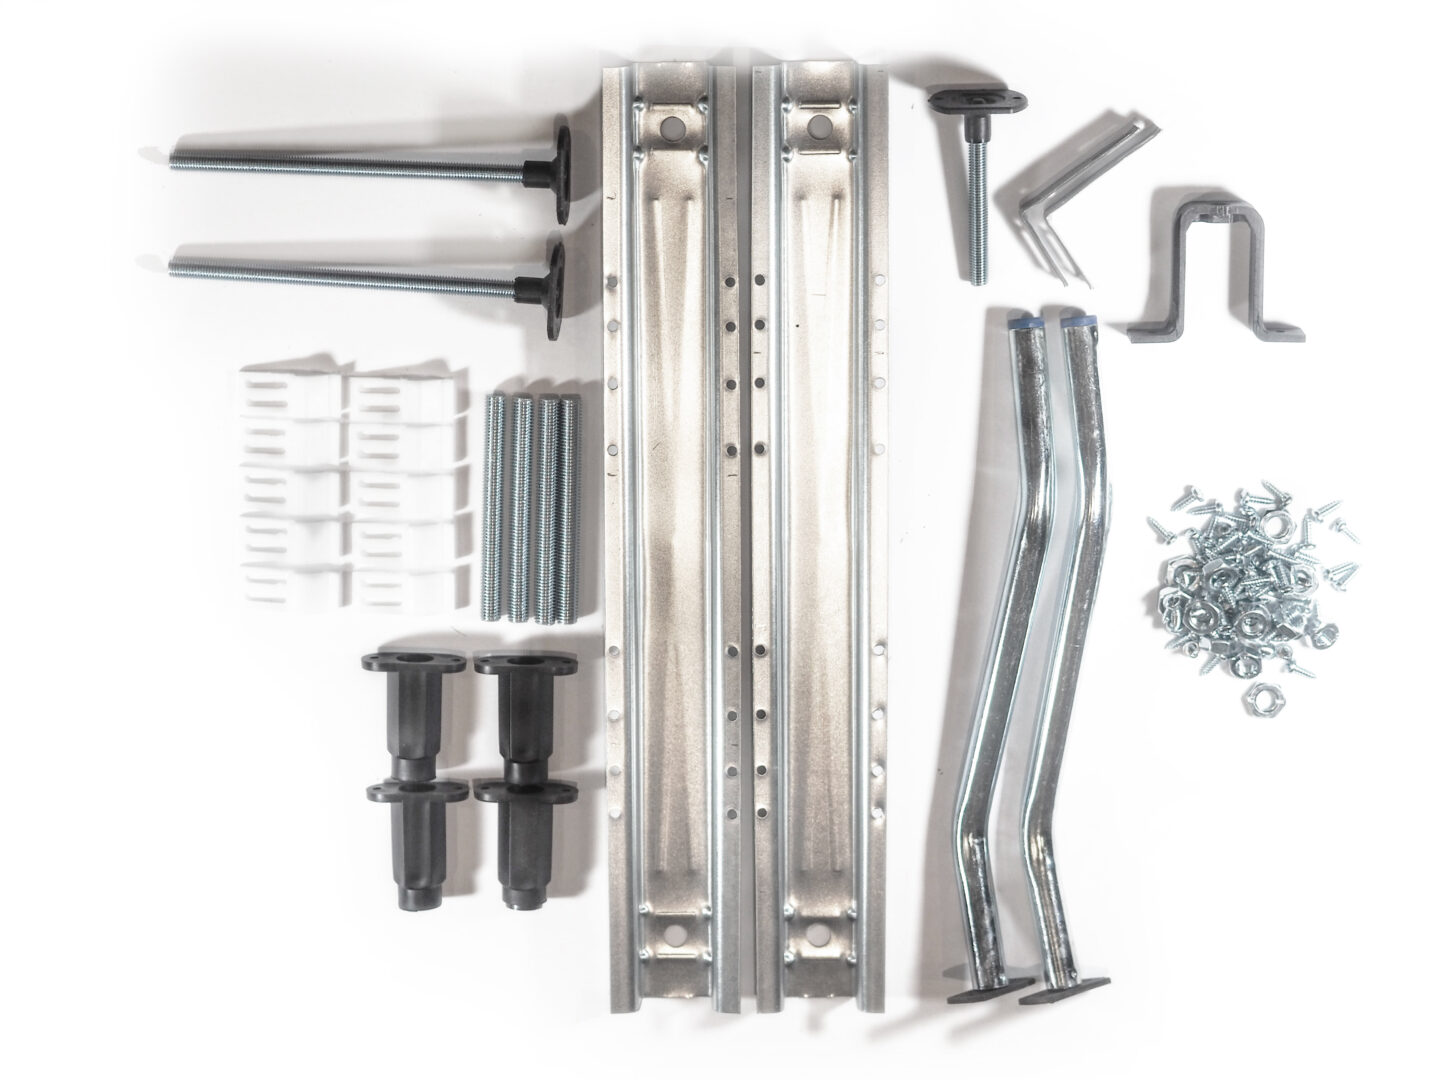 Full pack of spare parts for luxury curved fittings